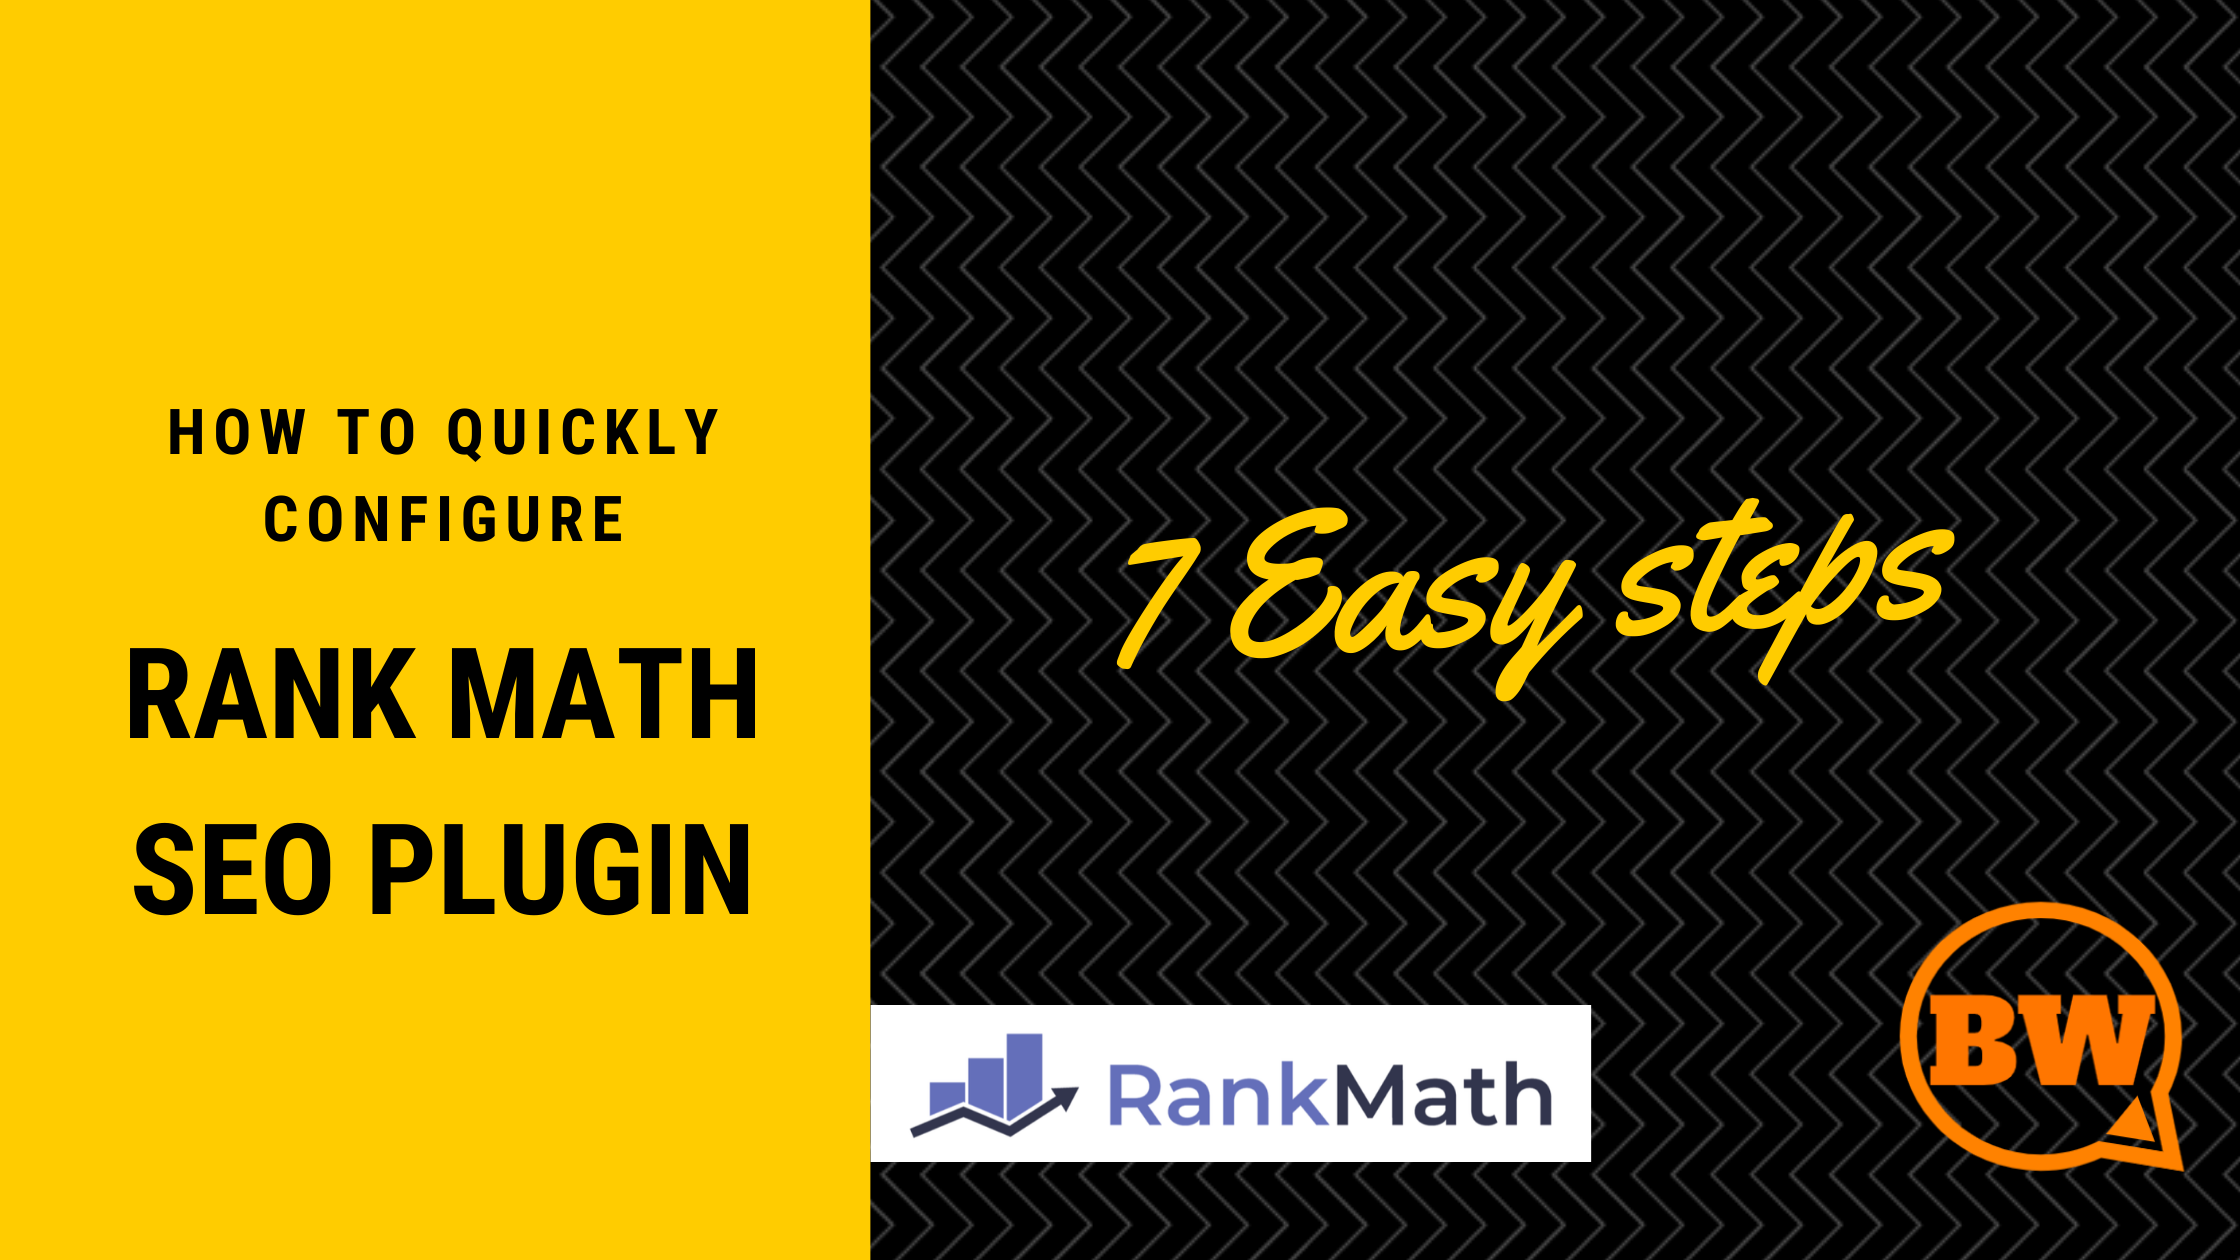 how to quickly configure rank math seo plugin